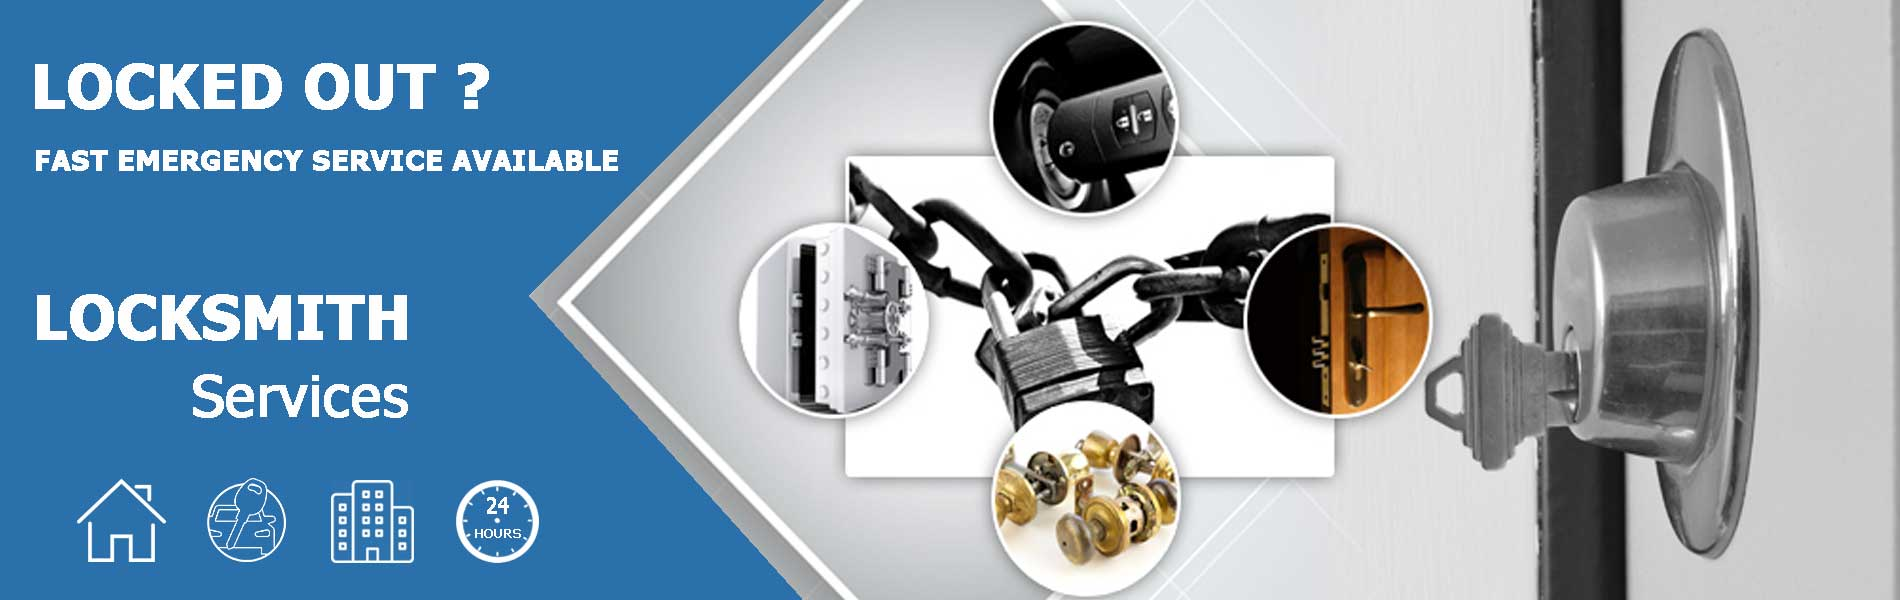 Washington Heights Locksmith Store, Washington Heights, NY 212-659-5256